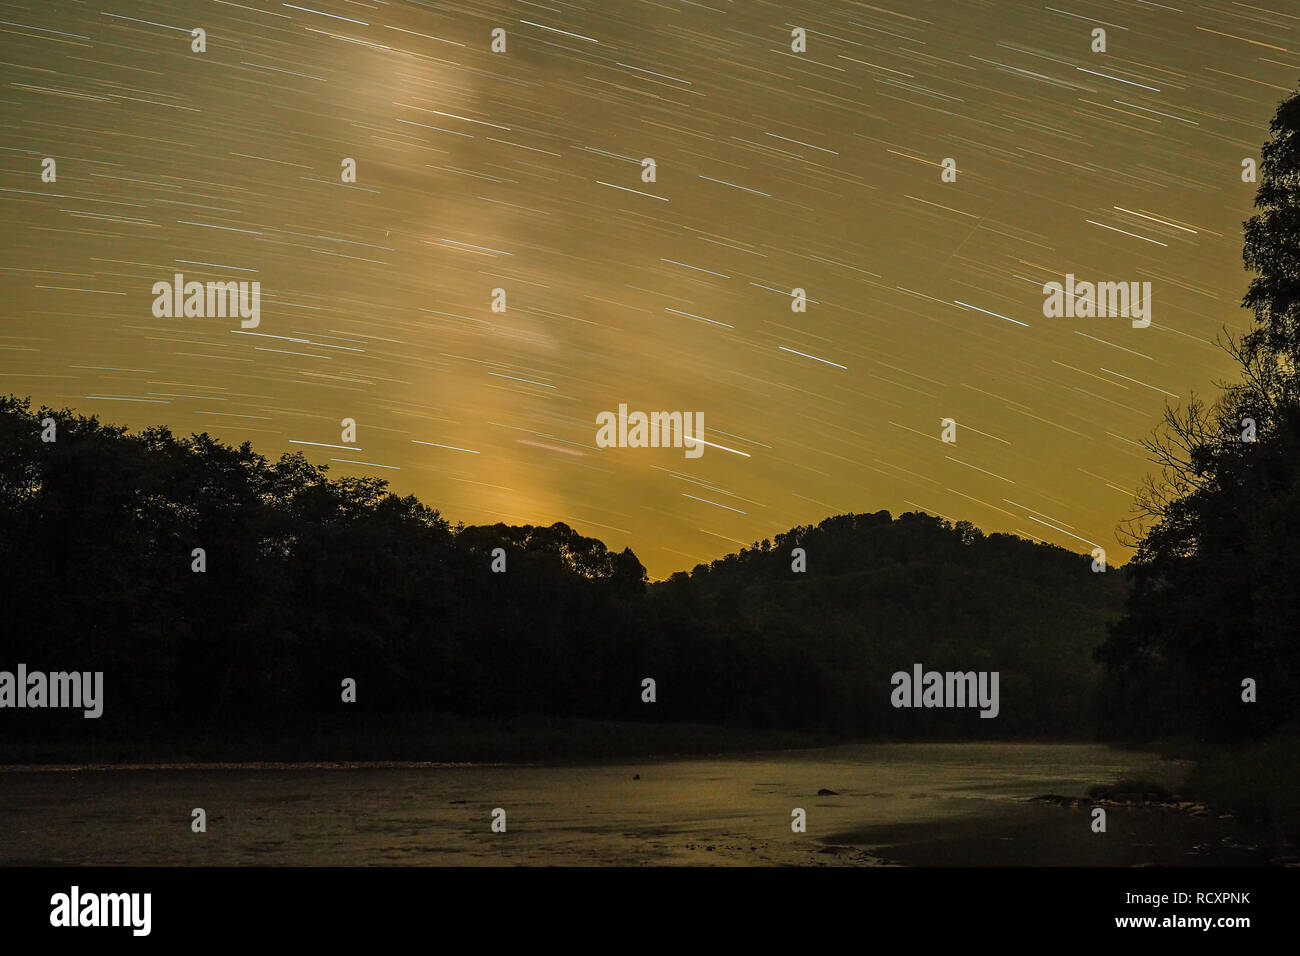 Sky with stars above the water. Bieszczady Mountains. Poland - Stock Image